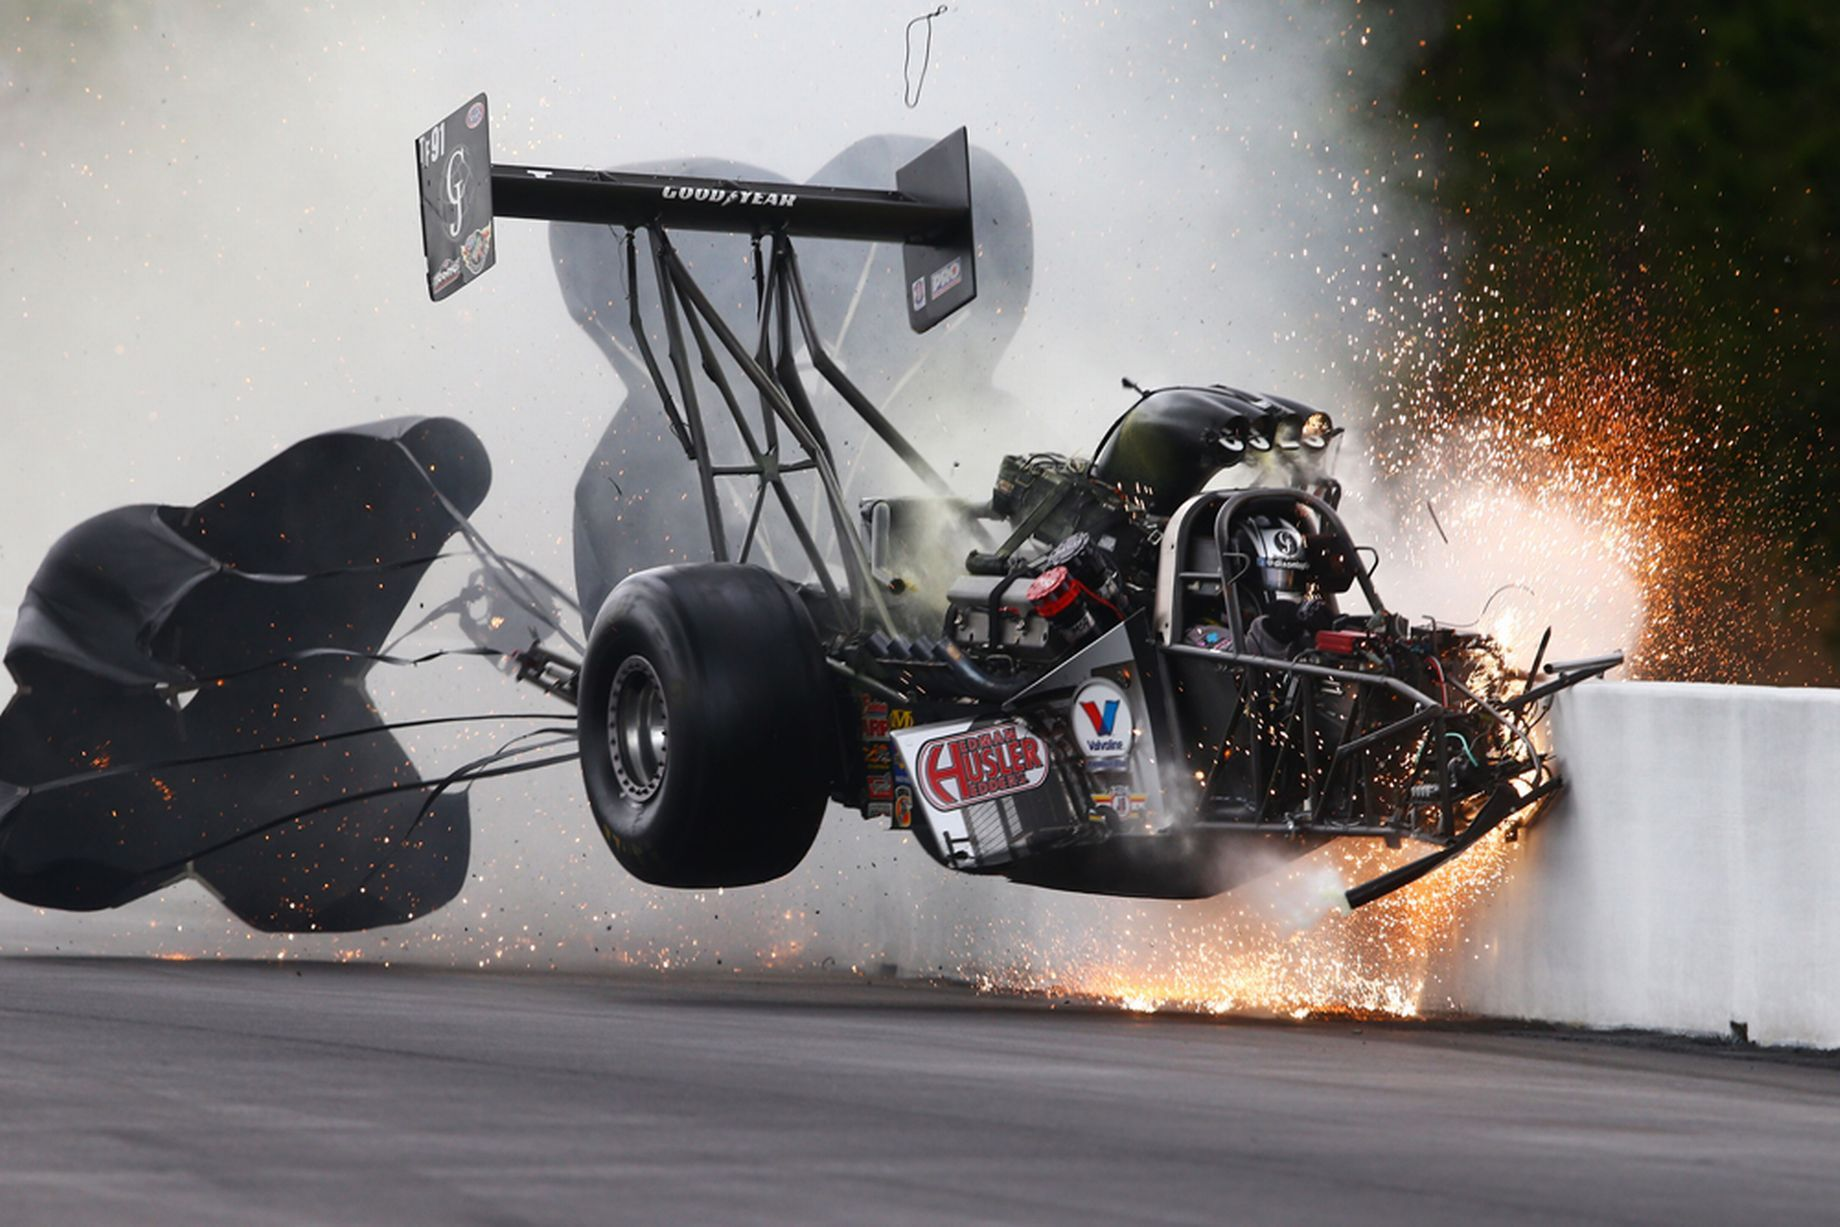 Drag racer hits wall at 280mph and walks away in 2020